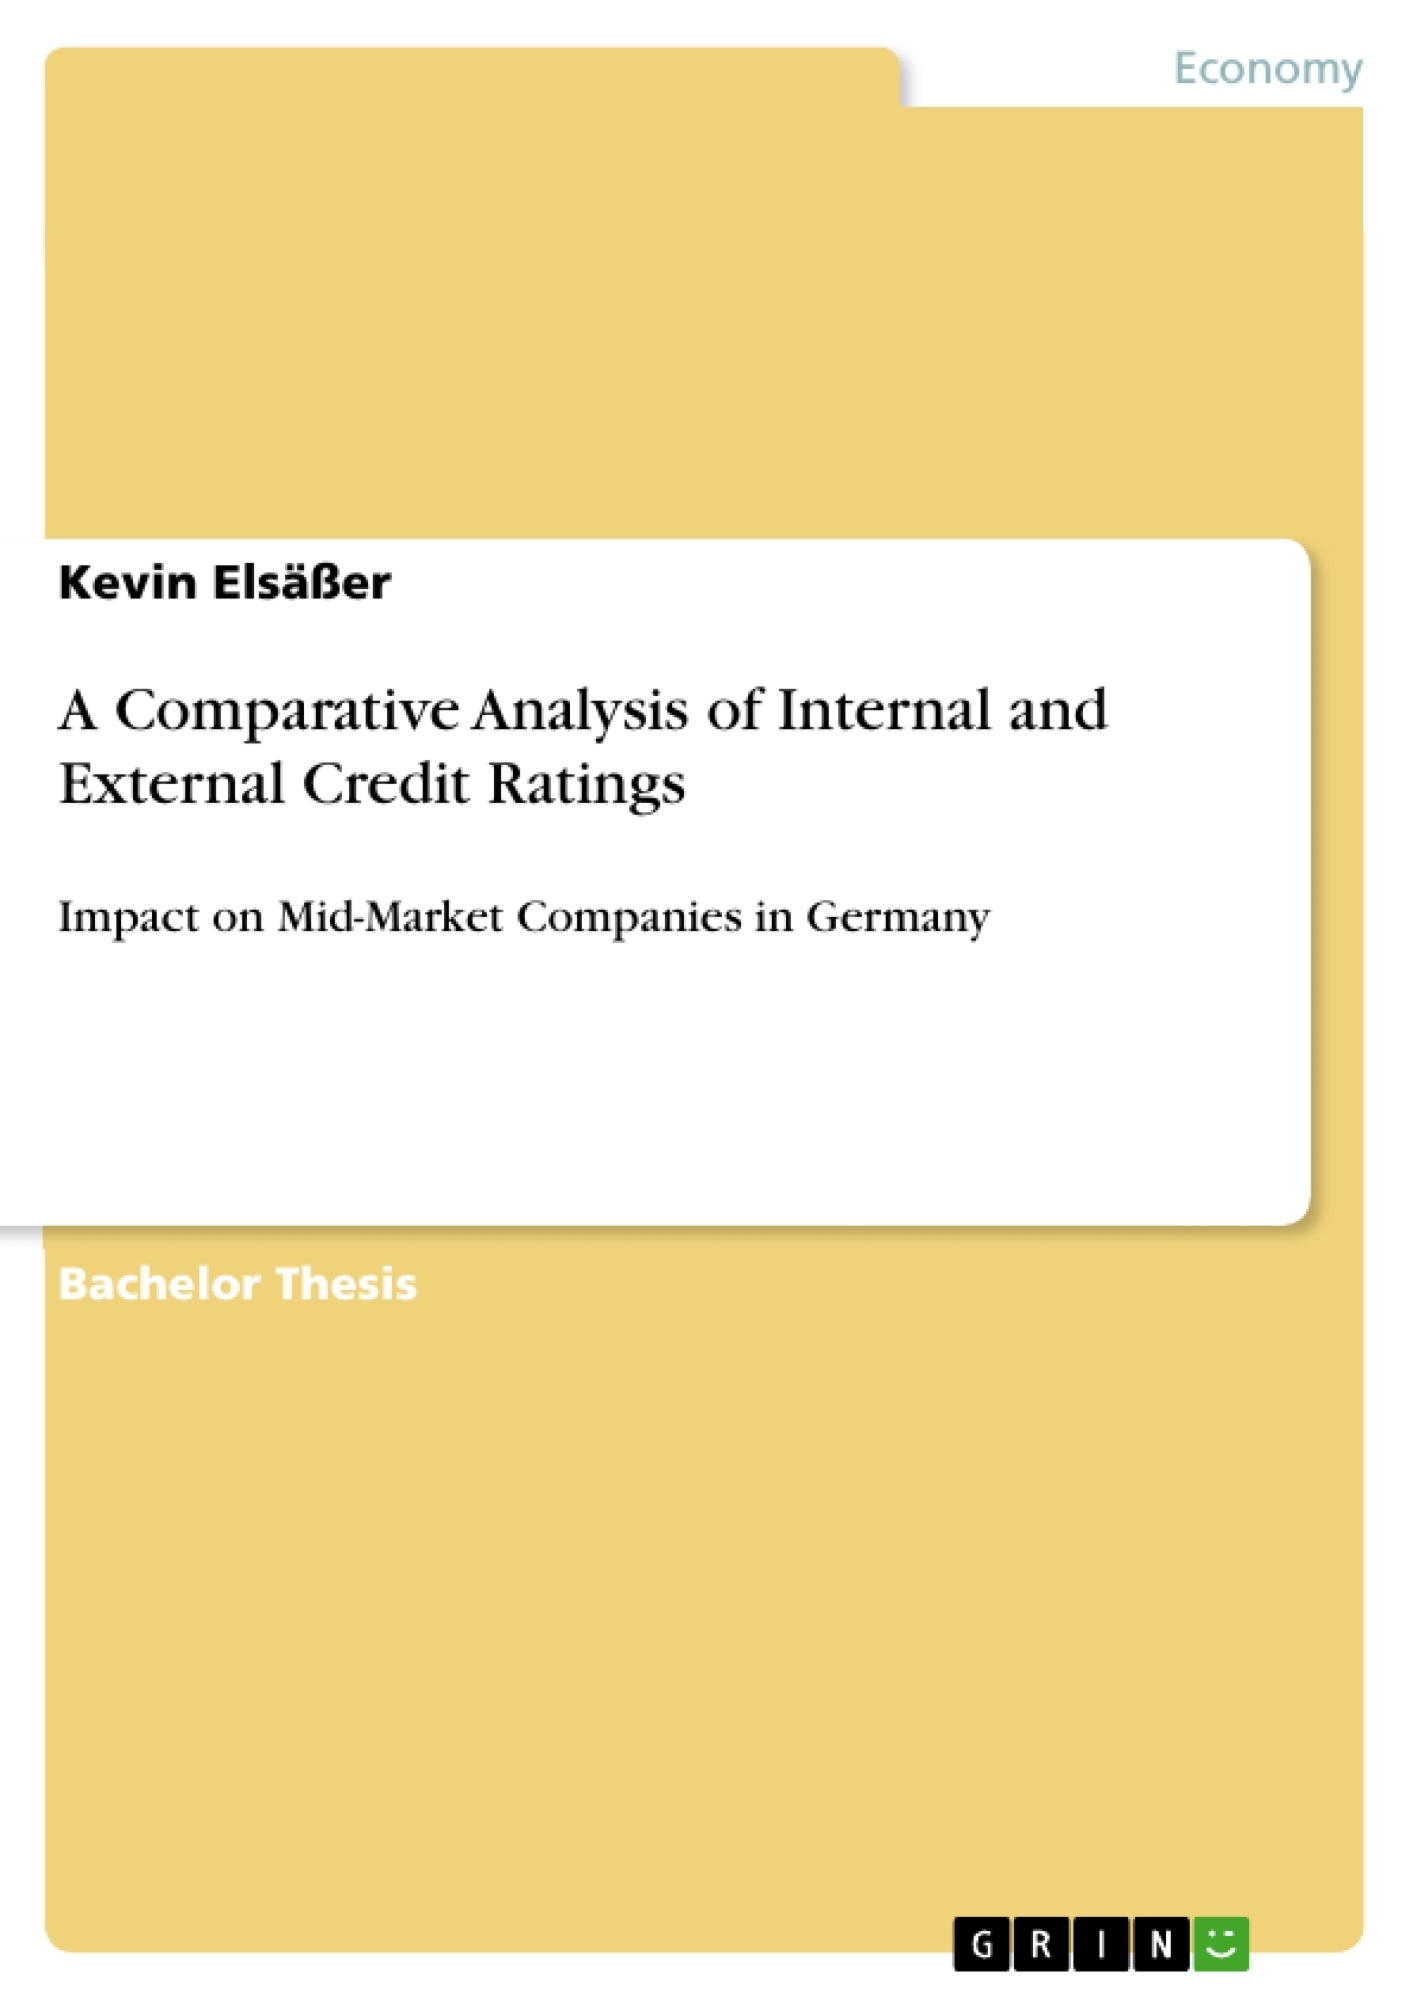 Title: A Comparative Analysis of Internal and External Credit Ratings